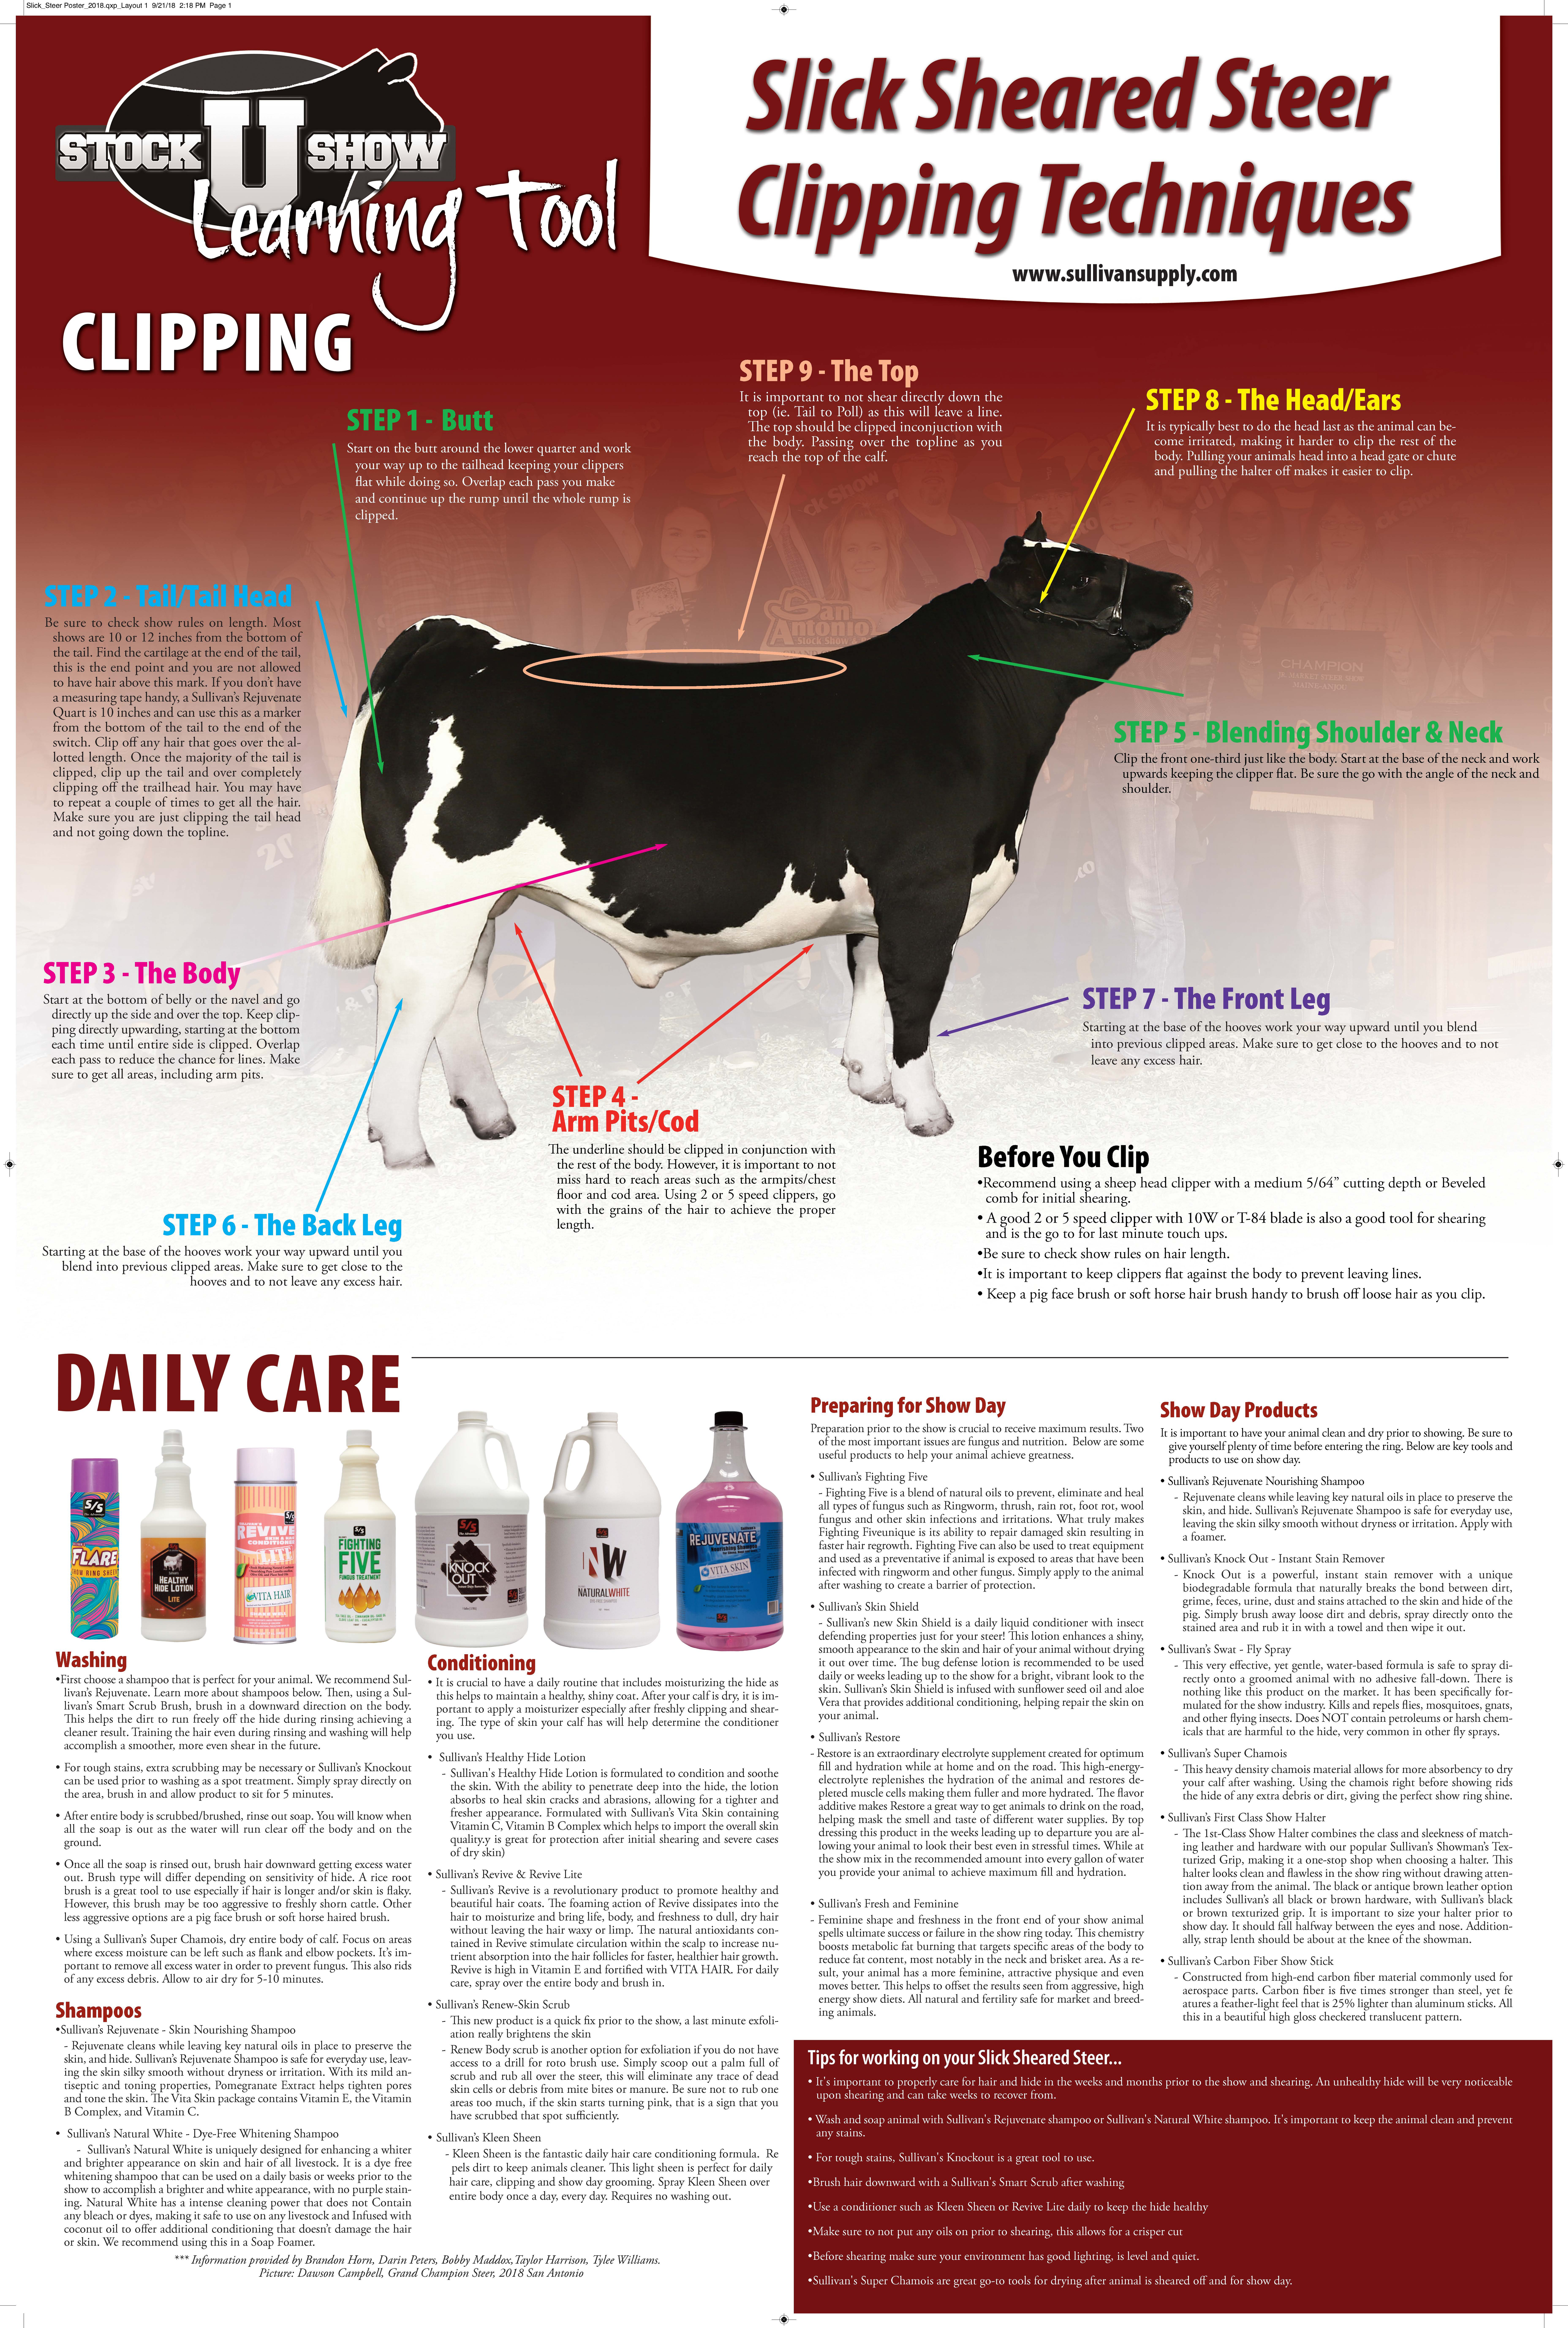 Learn Tools As You Put Them To Use In Projects: Slick Sheared Steer Learning Tools Poster